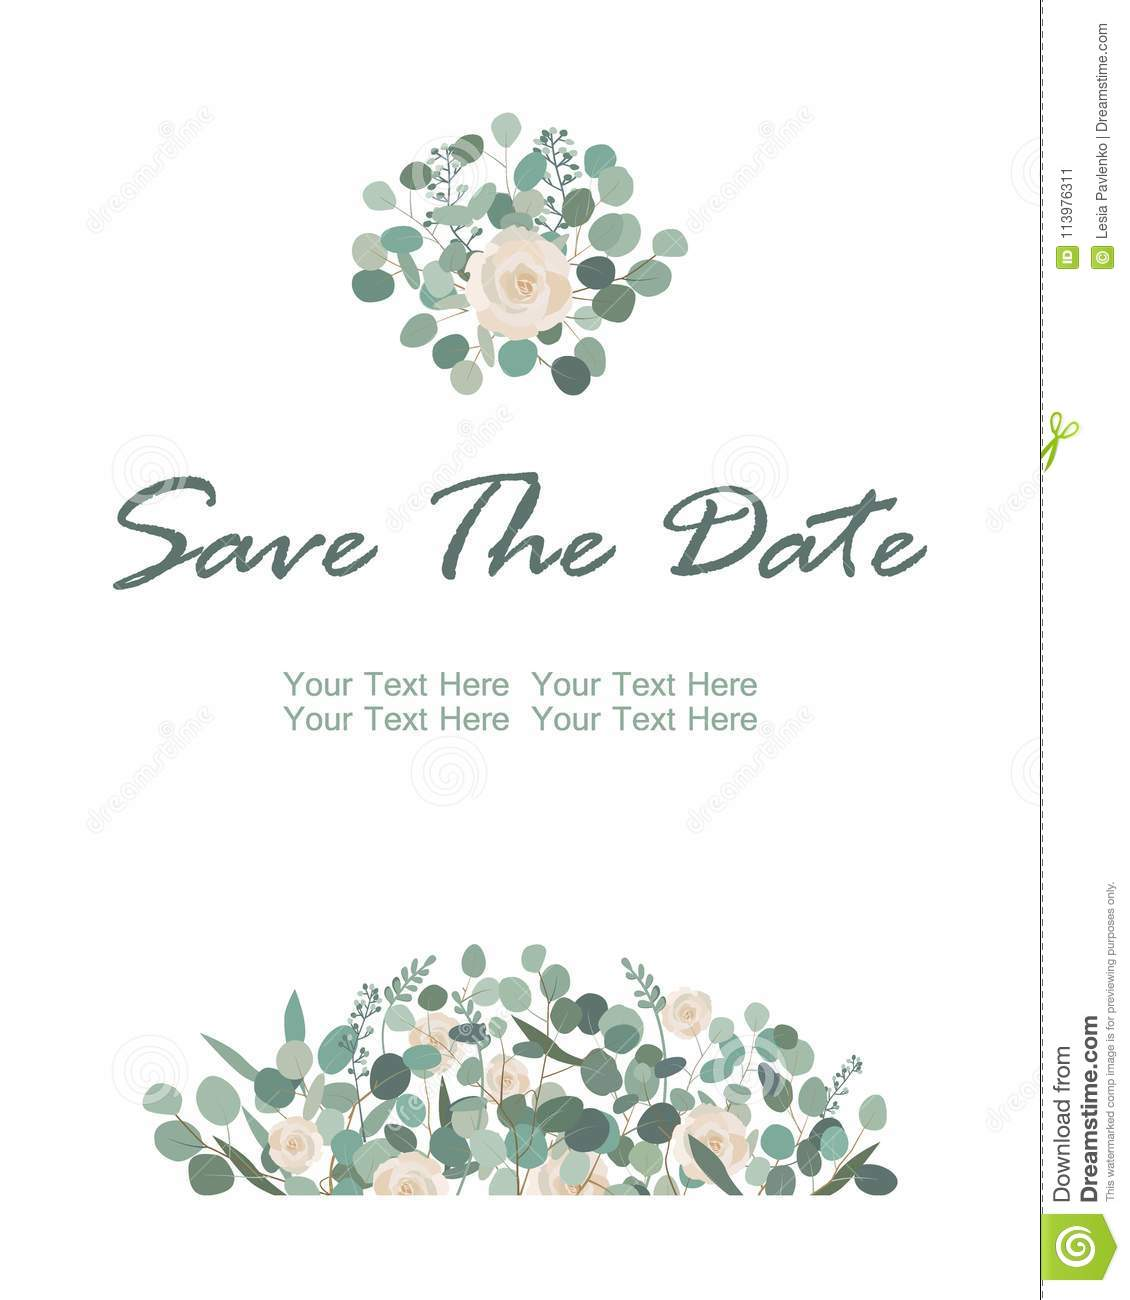 Save The Date Card With White Rose Flowers And Eucalyptus Frame - Save the date text template